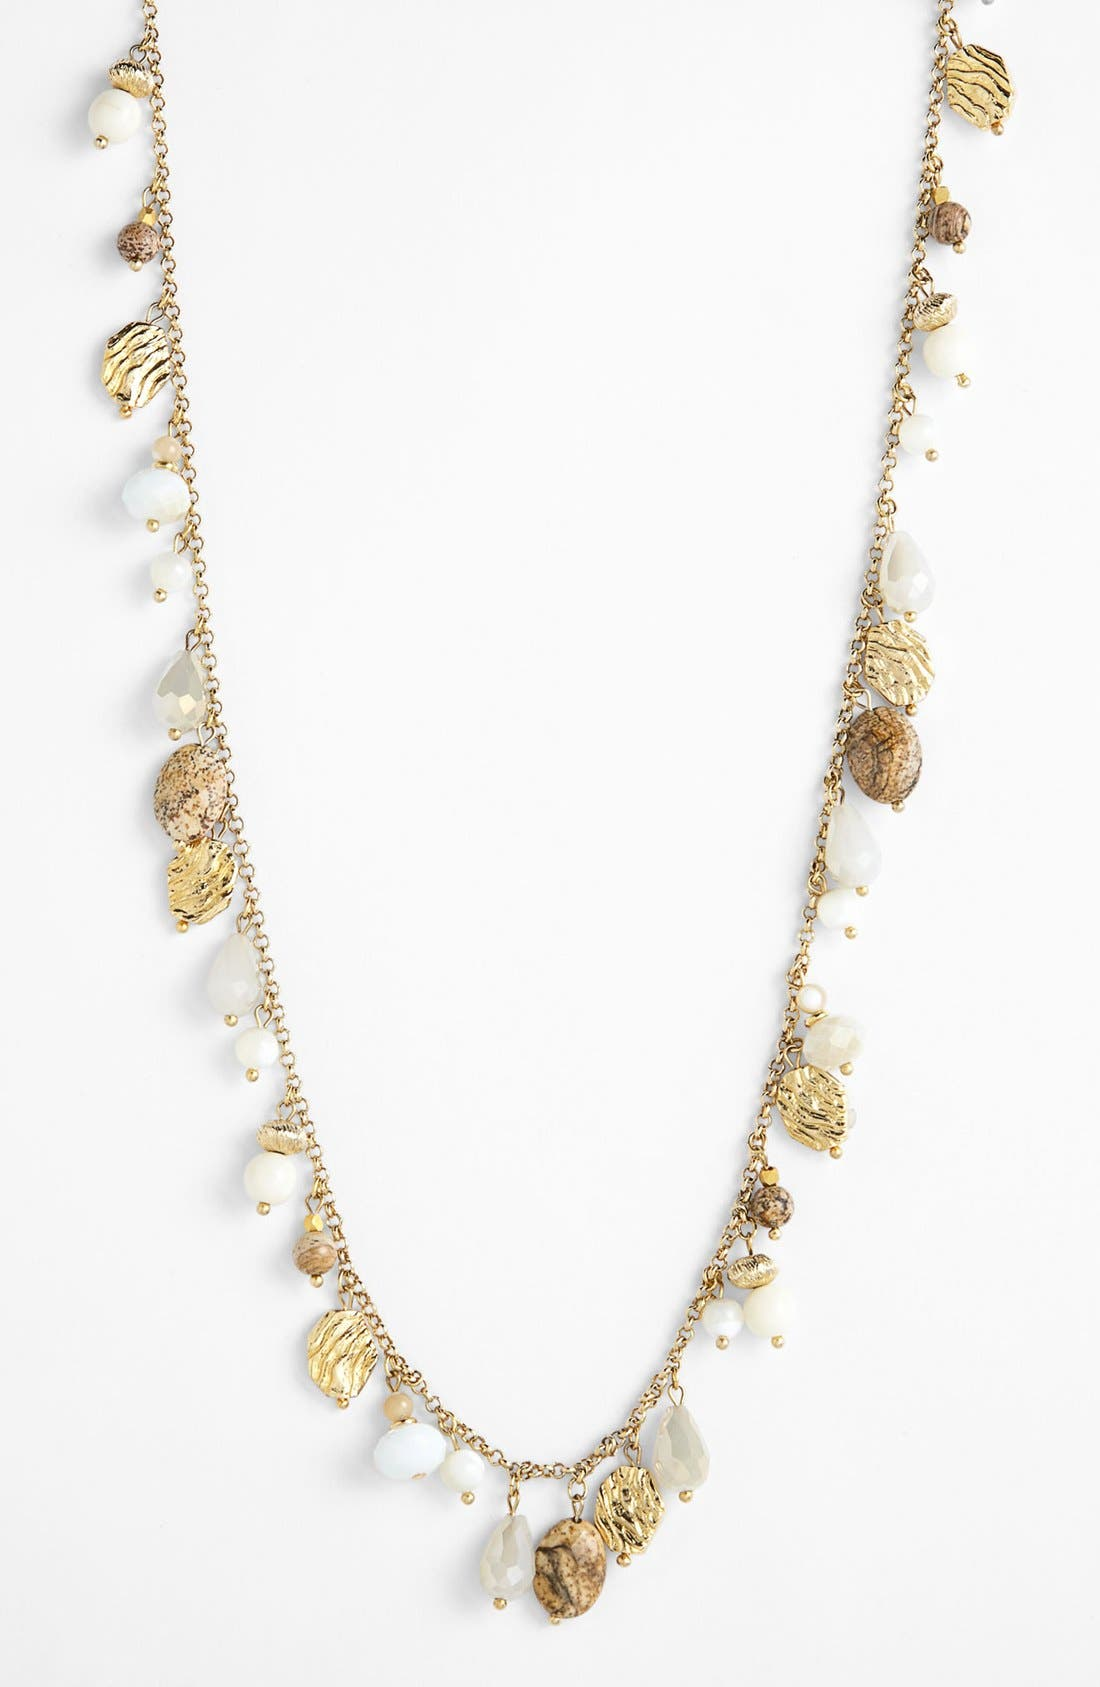 Main Image - Nordstrom 'Pebbles' Long Shaky Bead Necklace